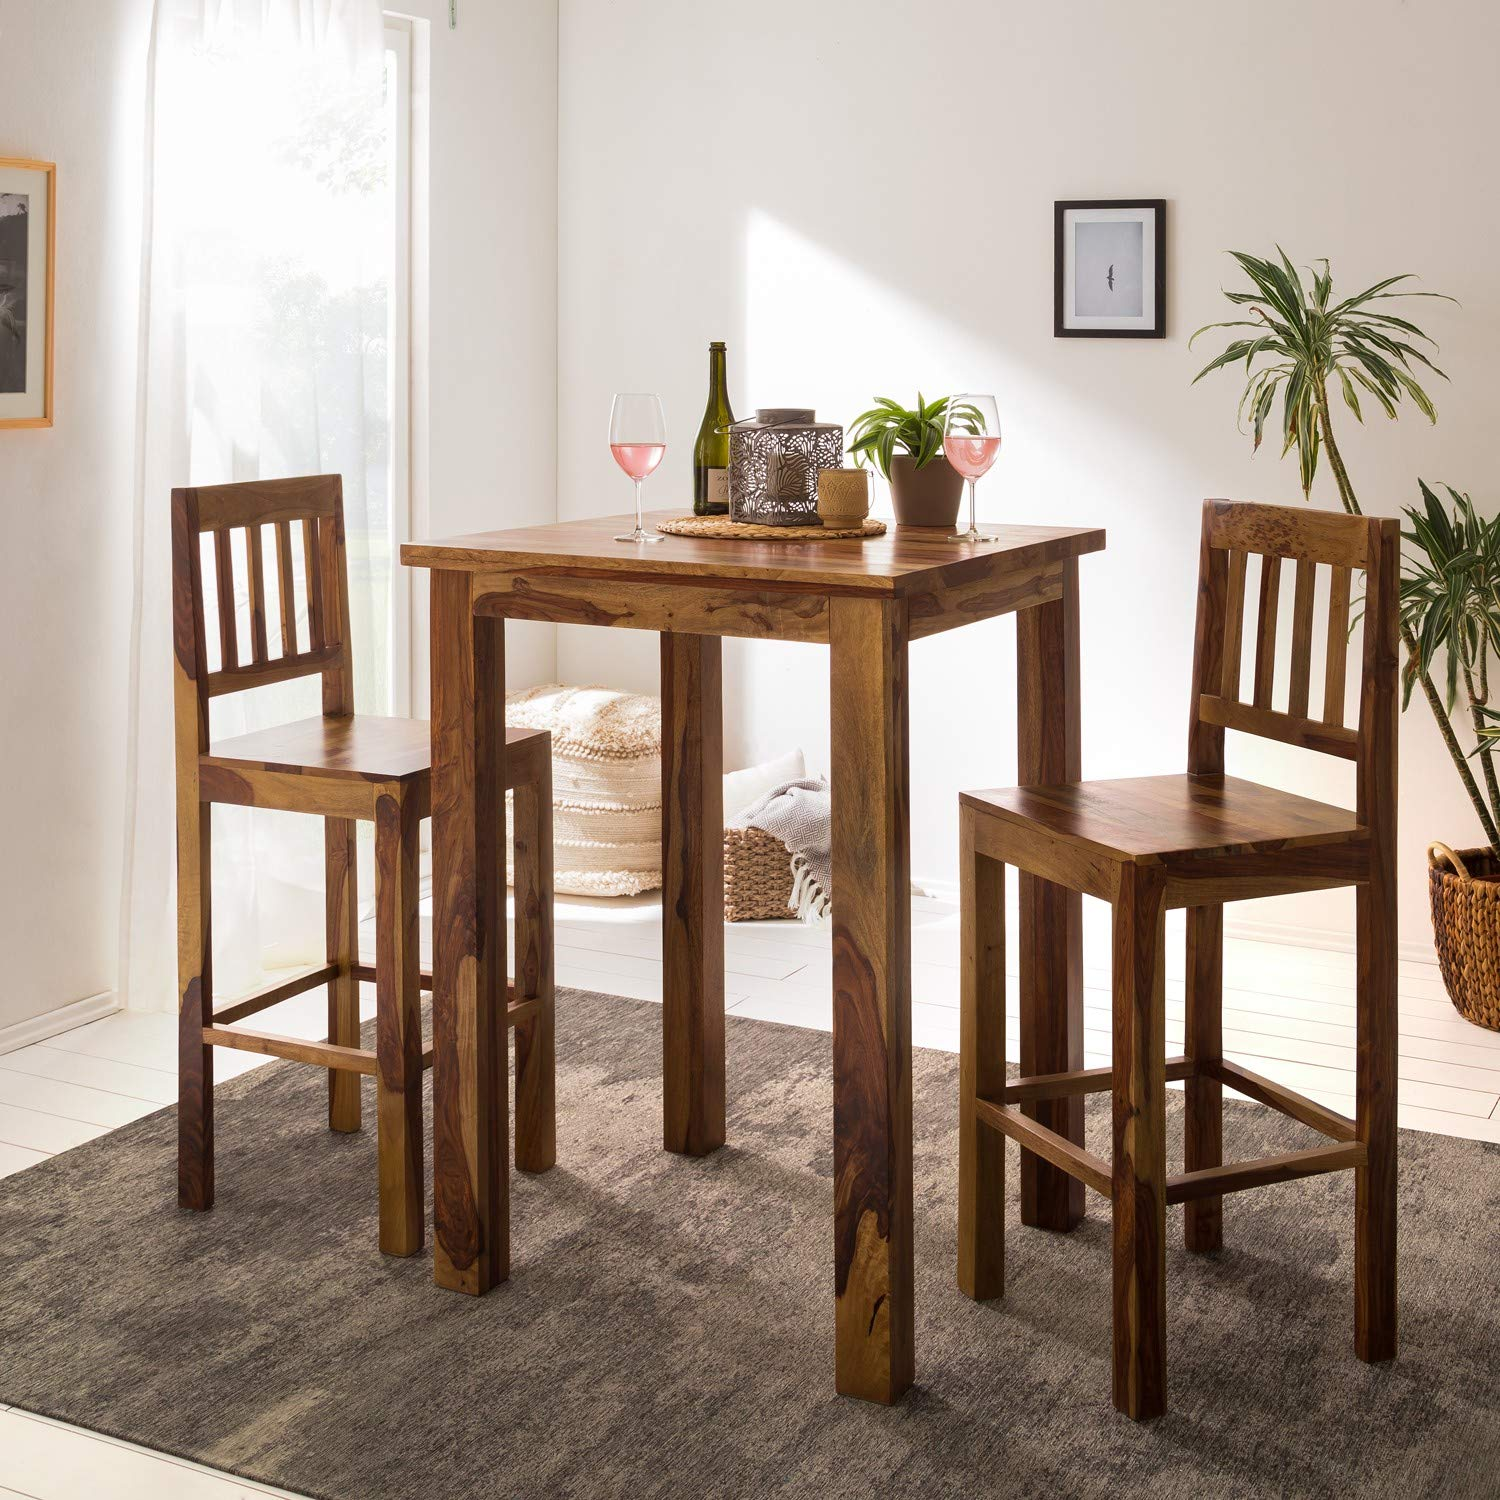 G Fine Furniture Wooden Long 9 Seater Bar Table Set   High Bar Table and  Chairs Set   Kitchen Furniture   Sheesham Wood, Natural Brown